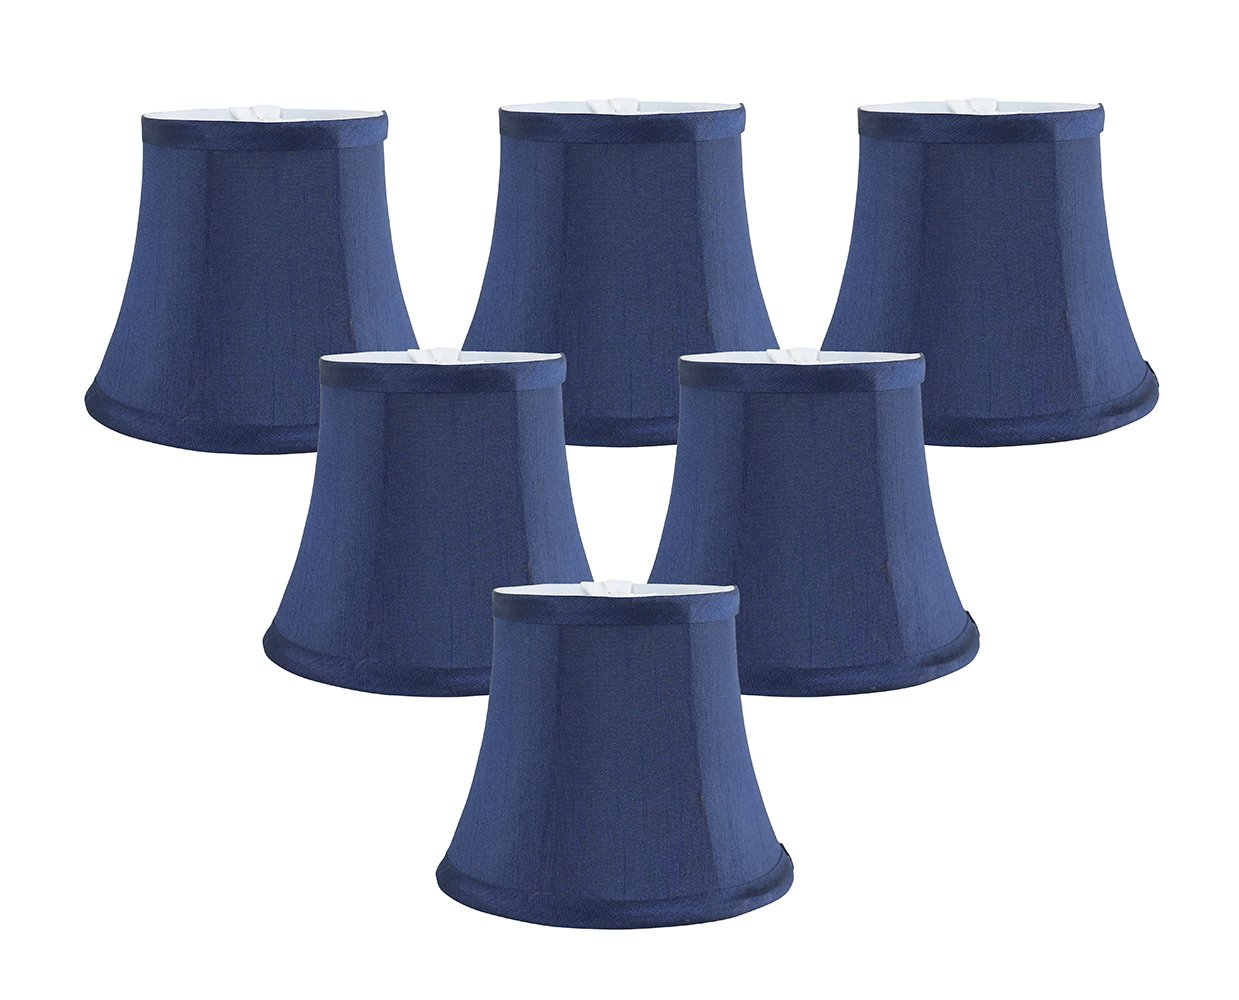 Meriville Set of 6 Blue Faux Silk Clip On Chandelier Lamp Shades, 4-inch by 6-inch by 5-inch